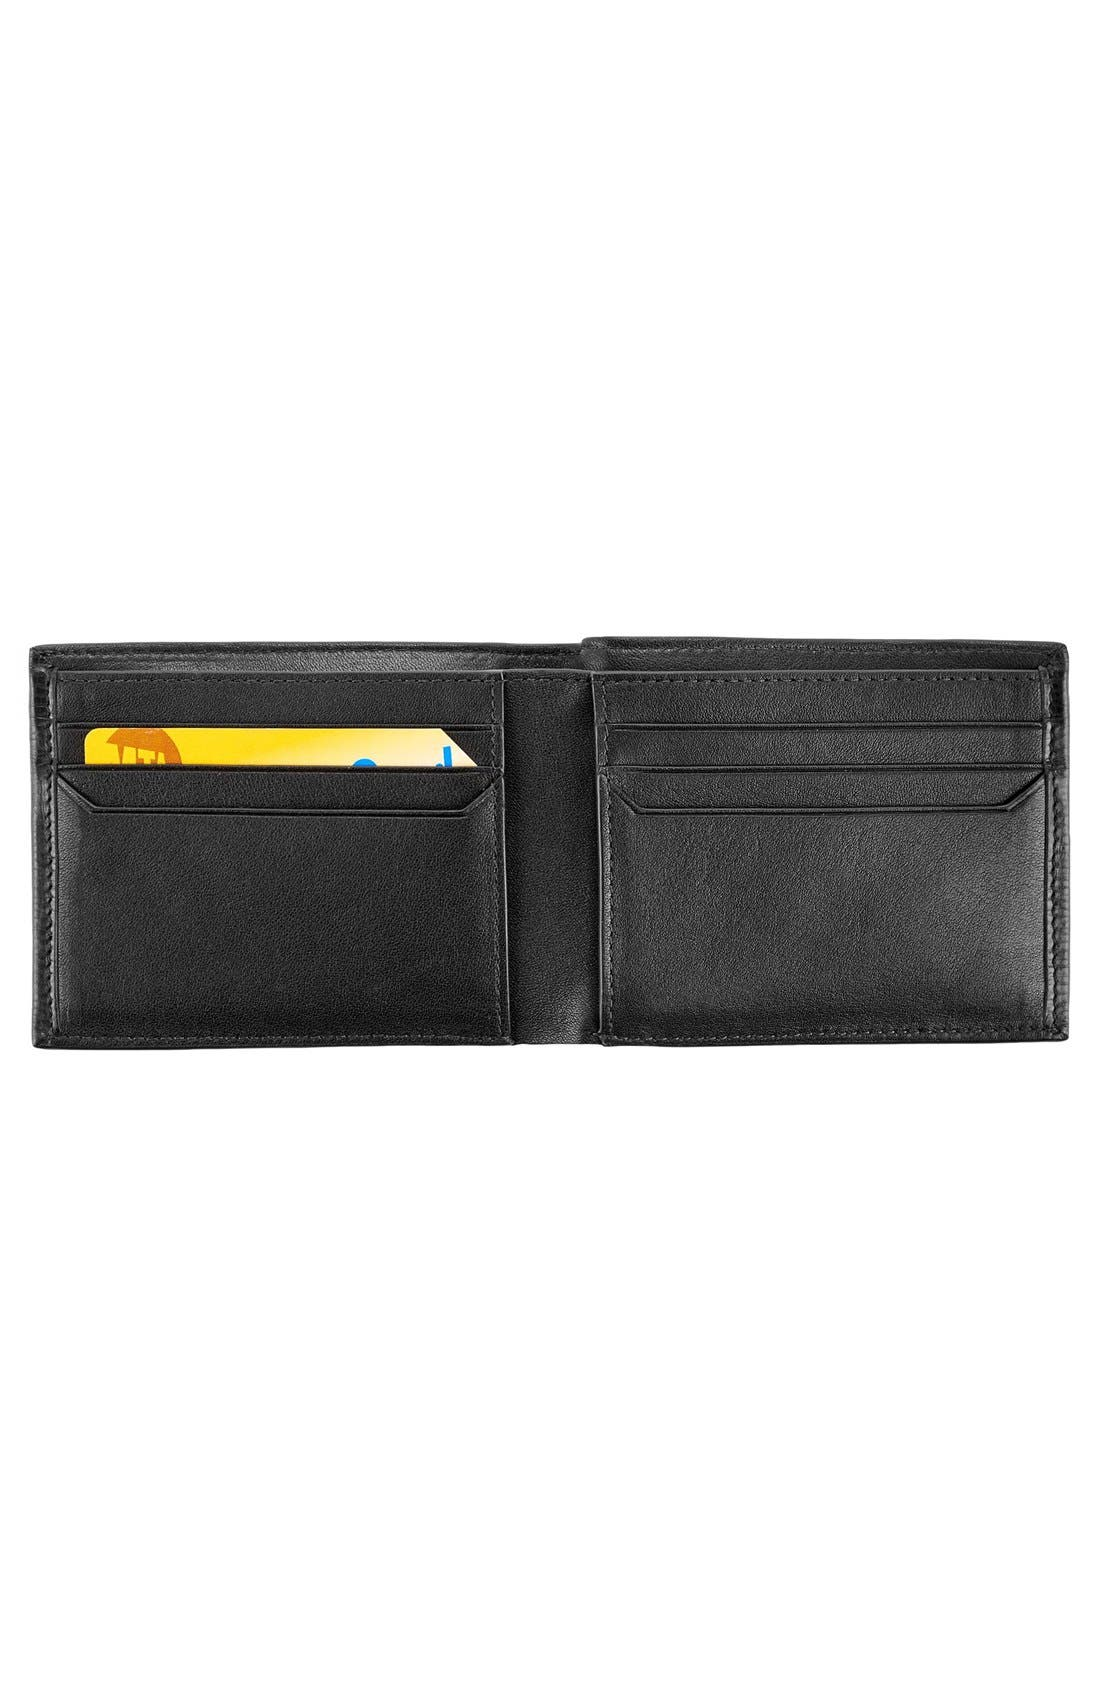 Monaco Double Billfold Leather Wallet,                             Alternate thumbnail 2, color,                             001